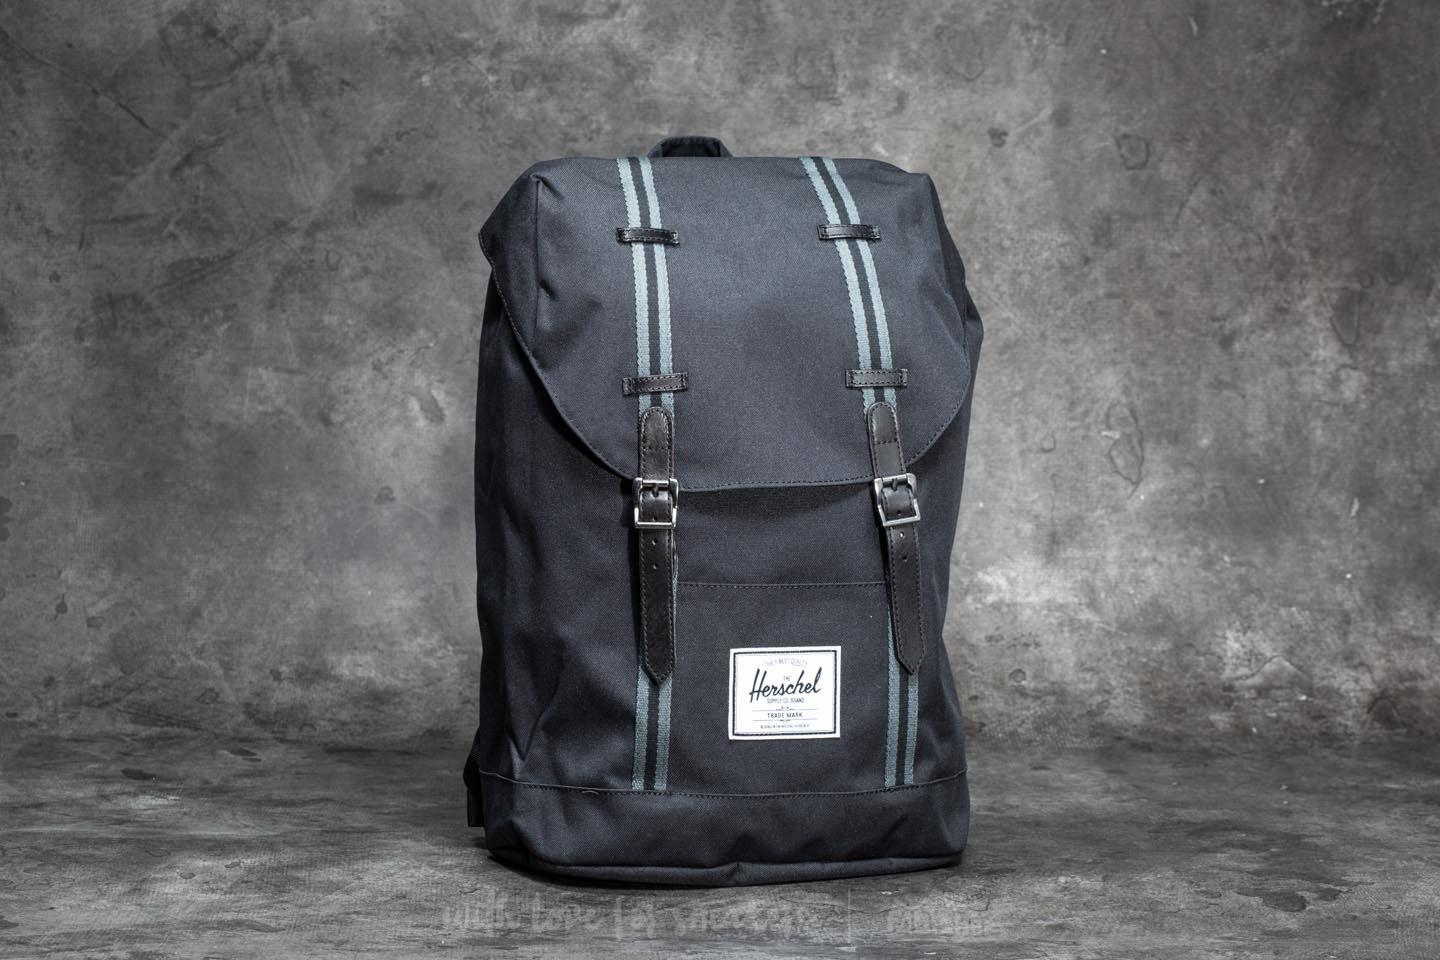 38eba0d81d Lyst - Herschel Supply Co. Retreat Backpack Black  Dark Shadow in ...